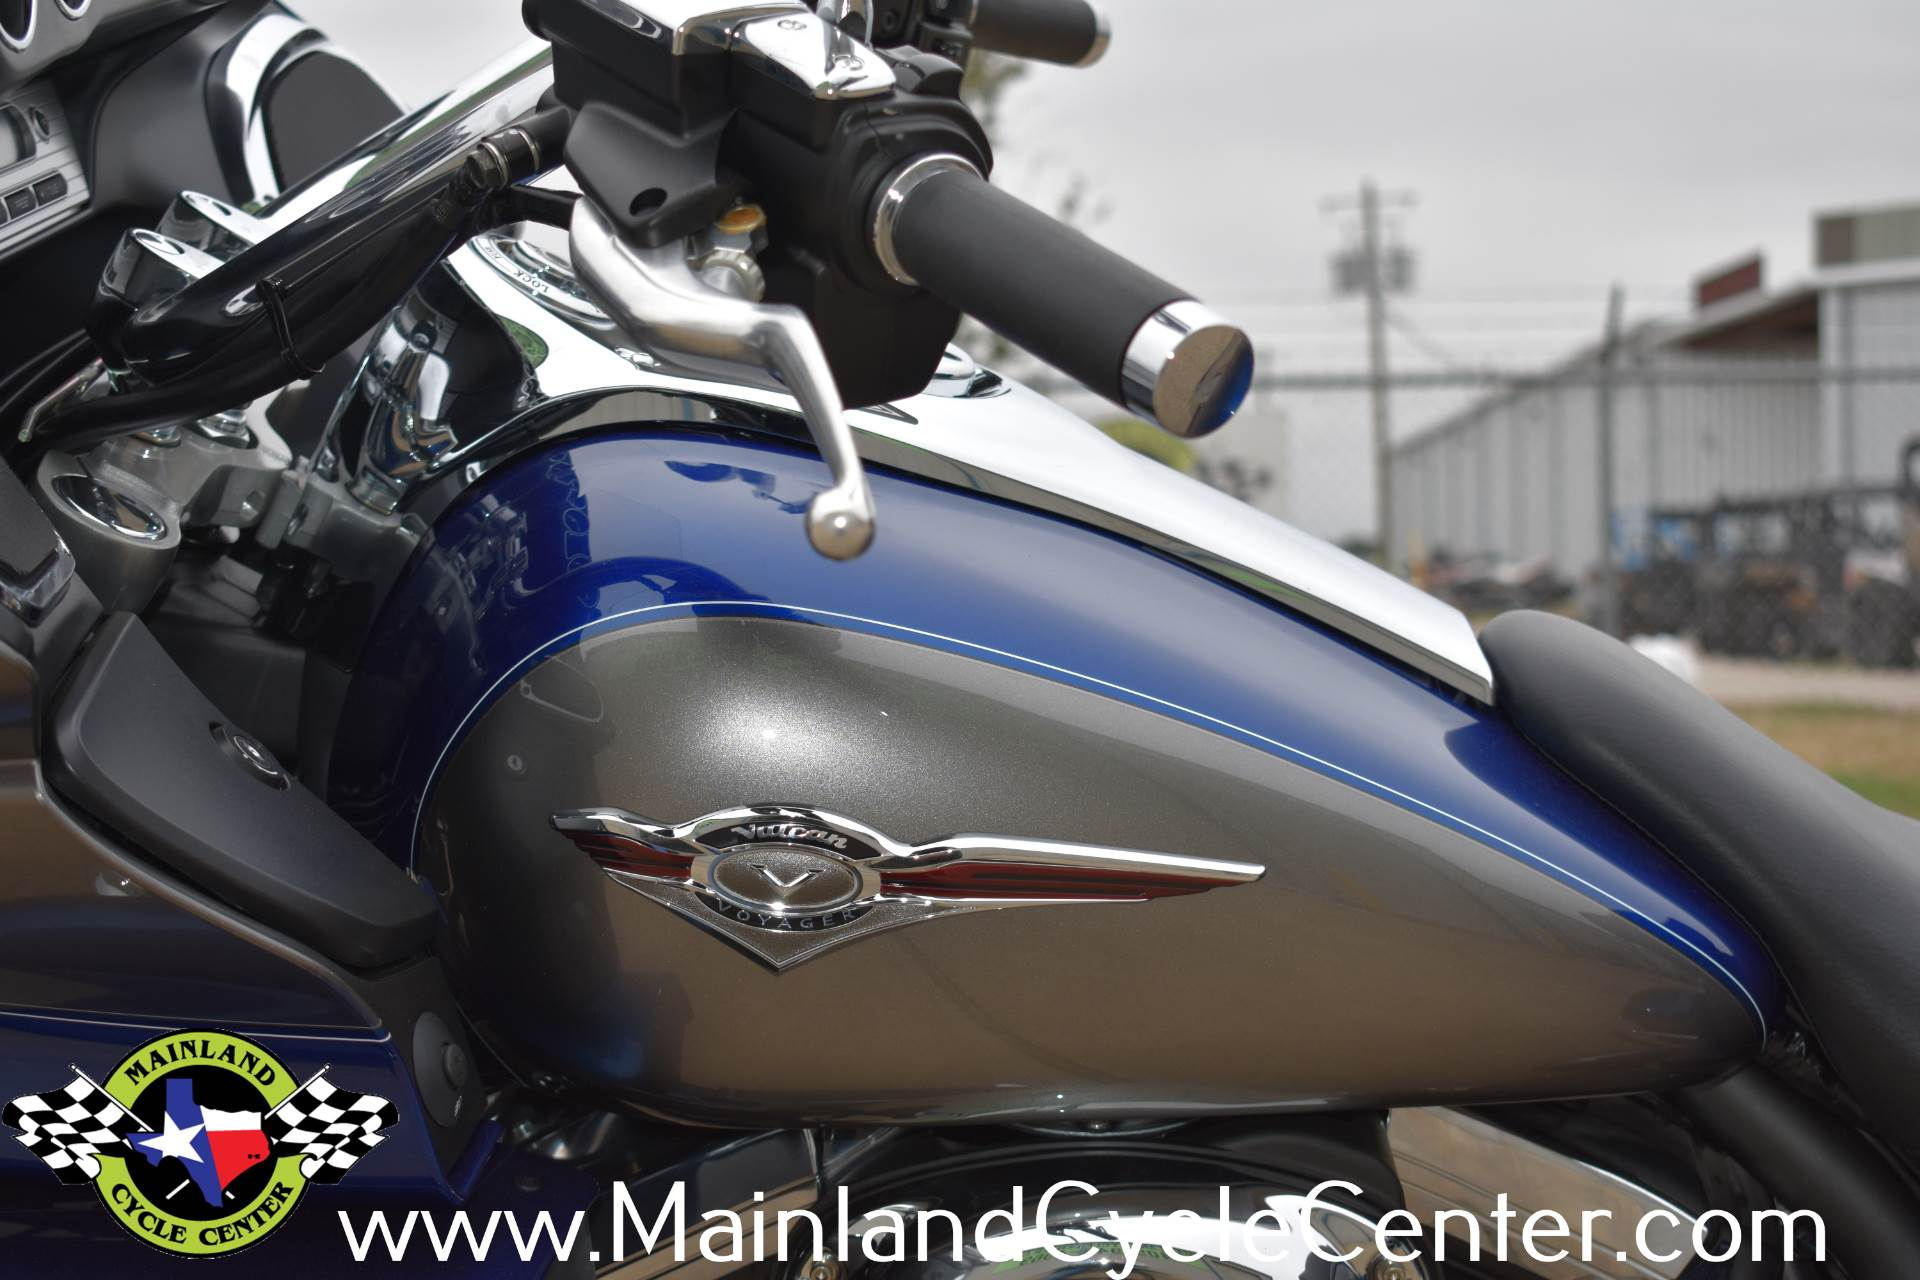 2019 Kawasaki Vulcan 1700 Voyager ABS in La Marque, Texas - Photo 16